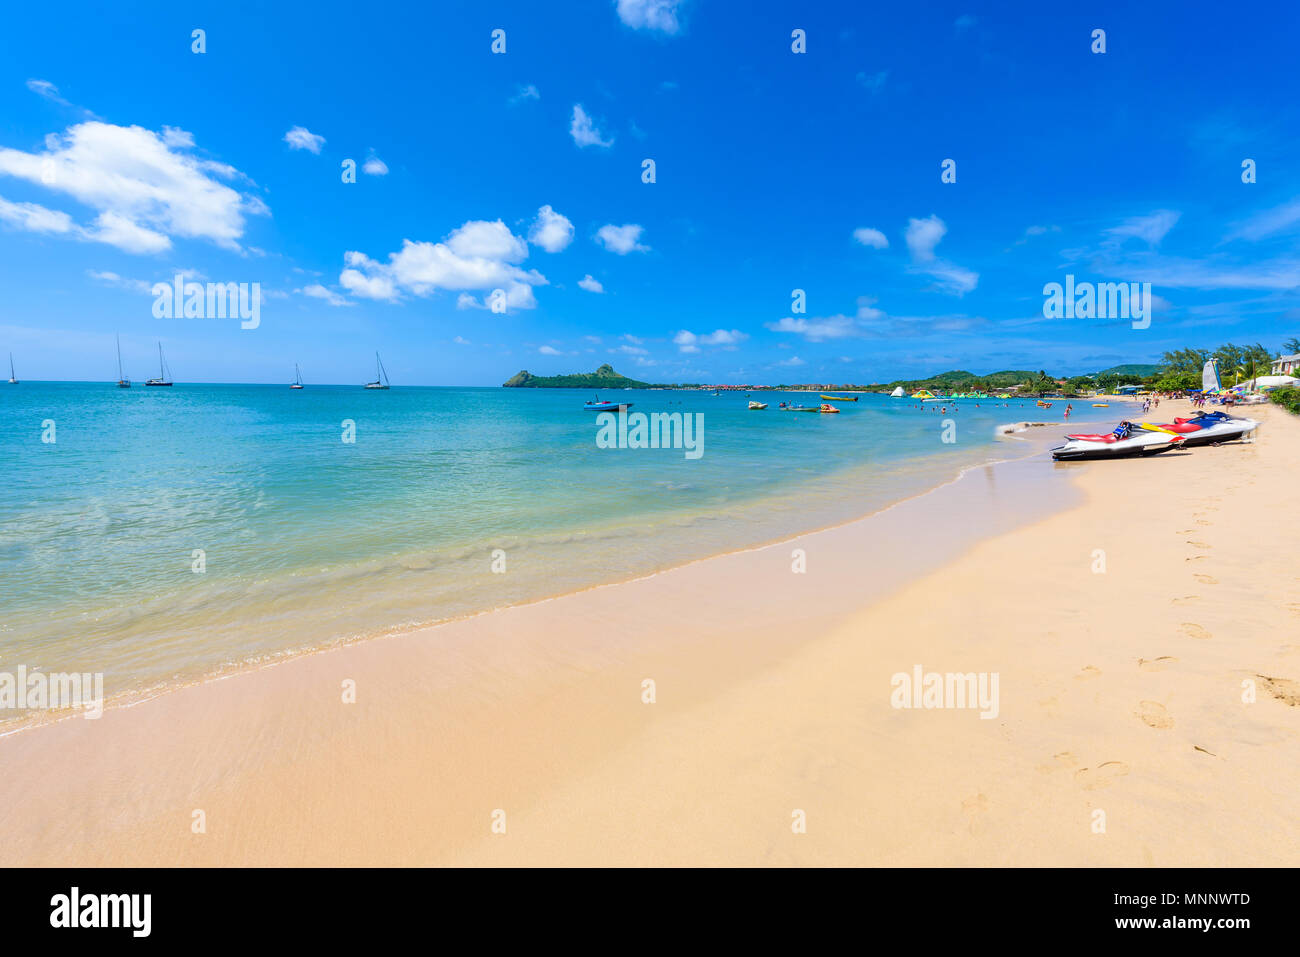 Reduit Beach - Tropical coast on the Caribbean island of St. Lucia. It is a paradise destination with a white sand beach and turquoiuse sea. - Stock Image